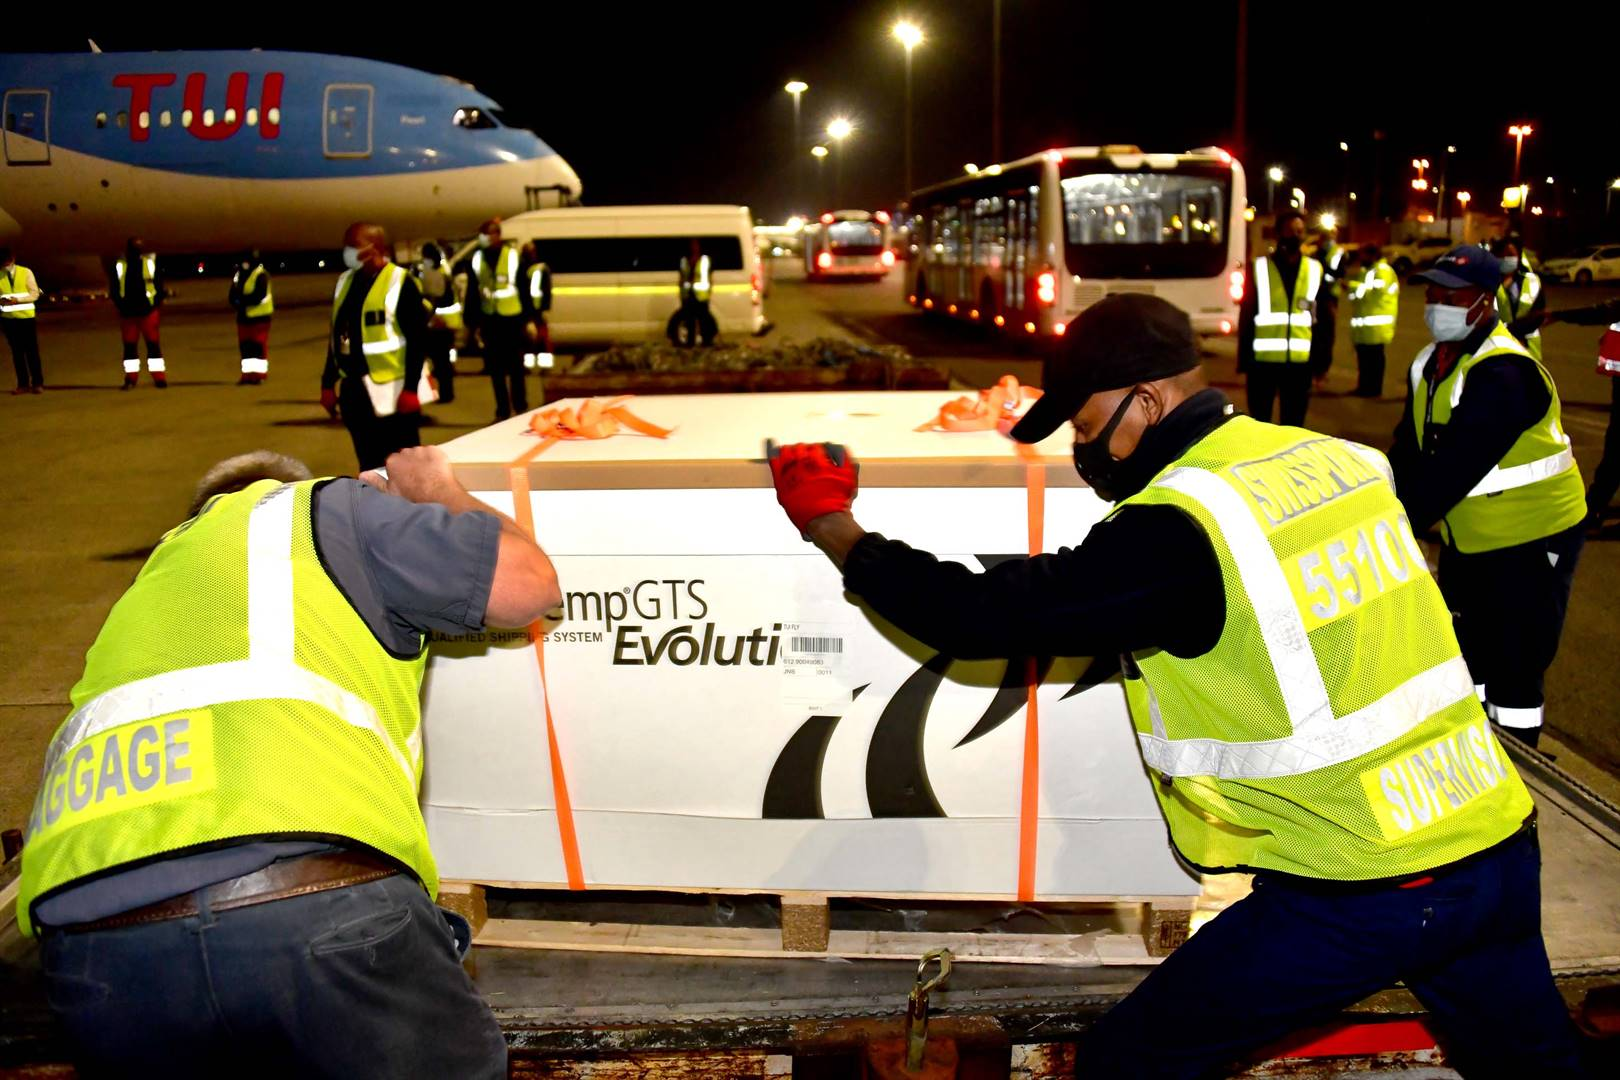 The new vaccines are offloaded at OR Tambo International Airport on February 16 2021. Picture: GCIS